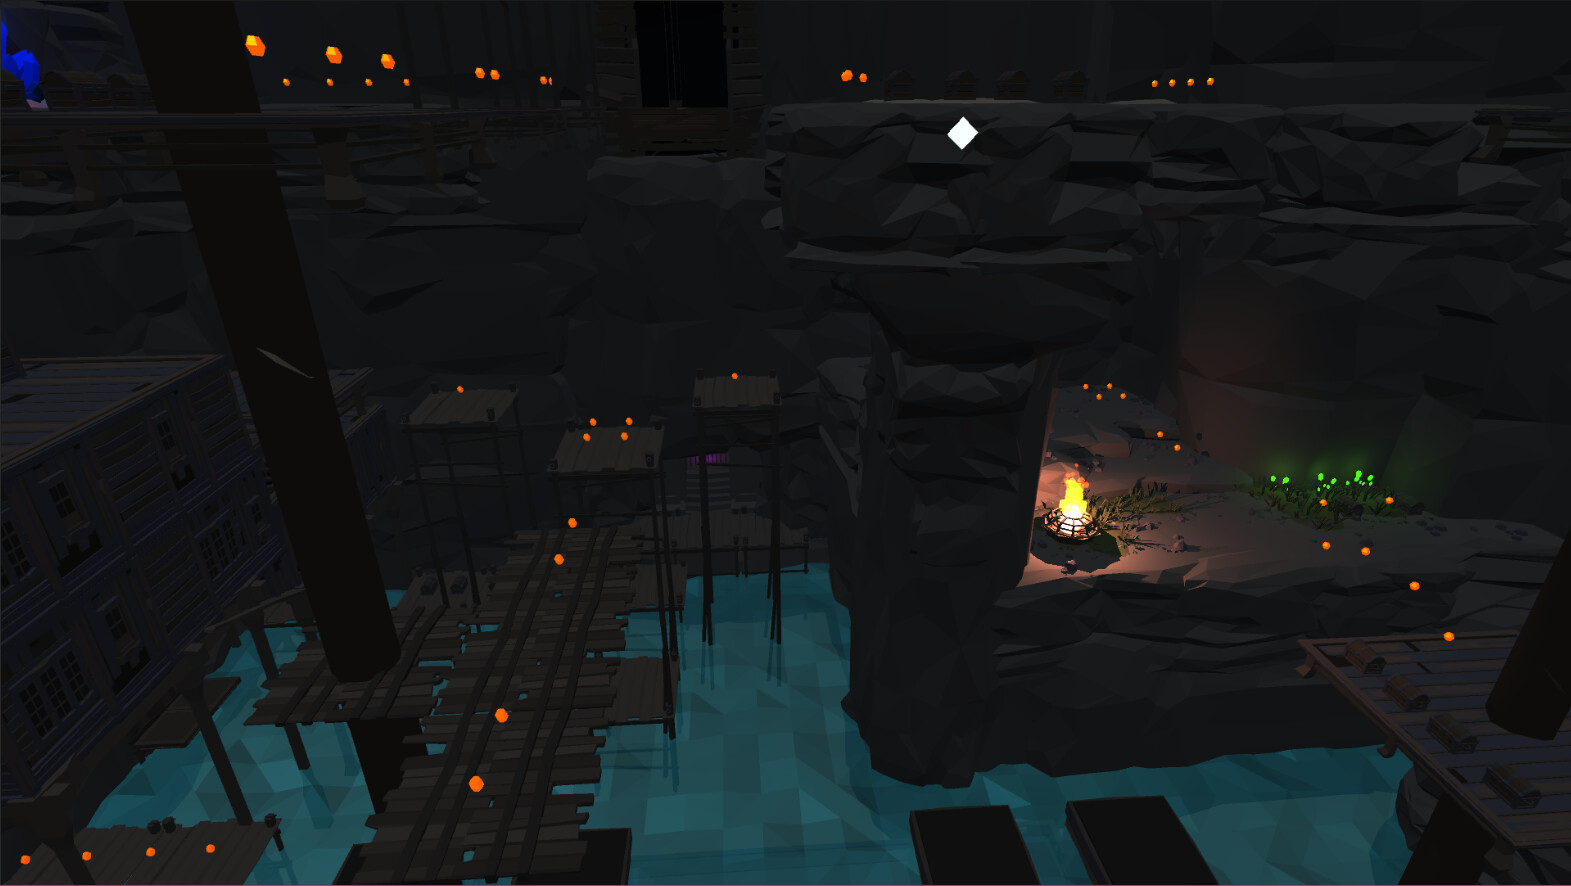 The player moves around the perimeter of the mines to continue upwards.